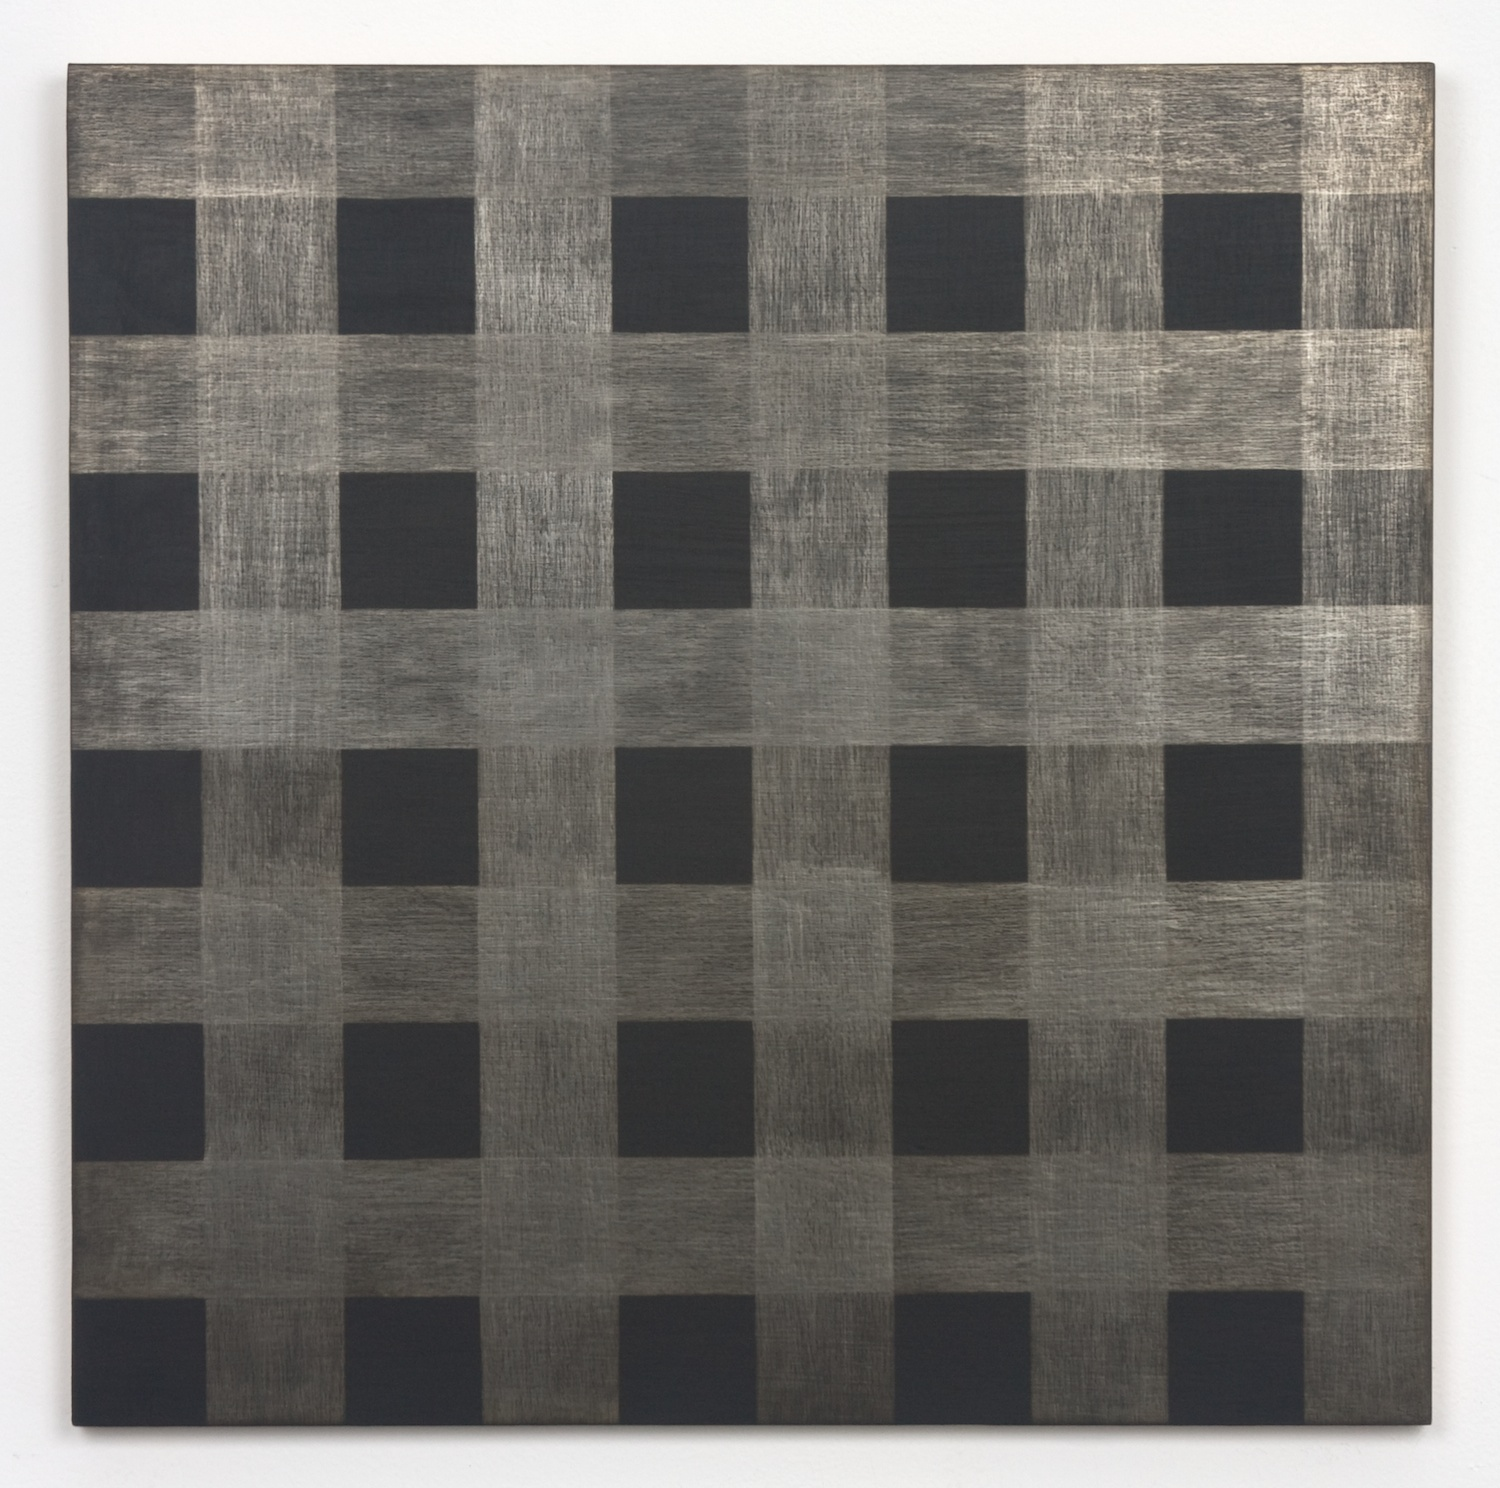 Michelle Grabner  Untitled  2010 Silver and gesso on panel 20h x 20w in MGrab169